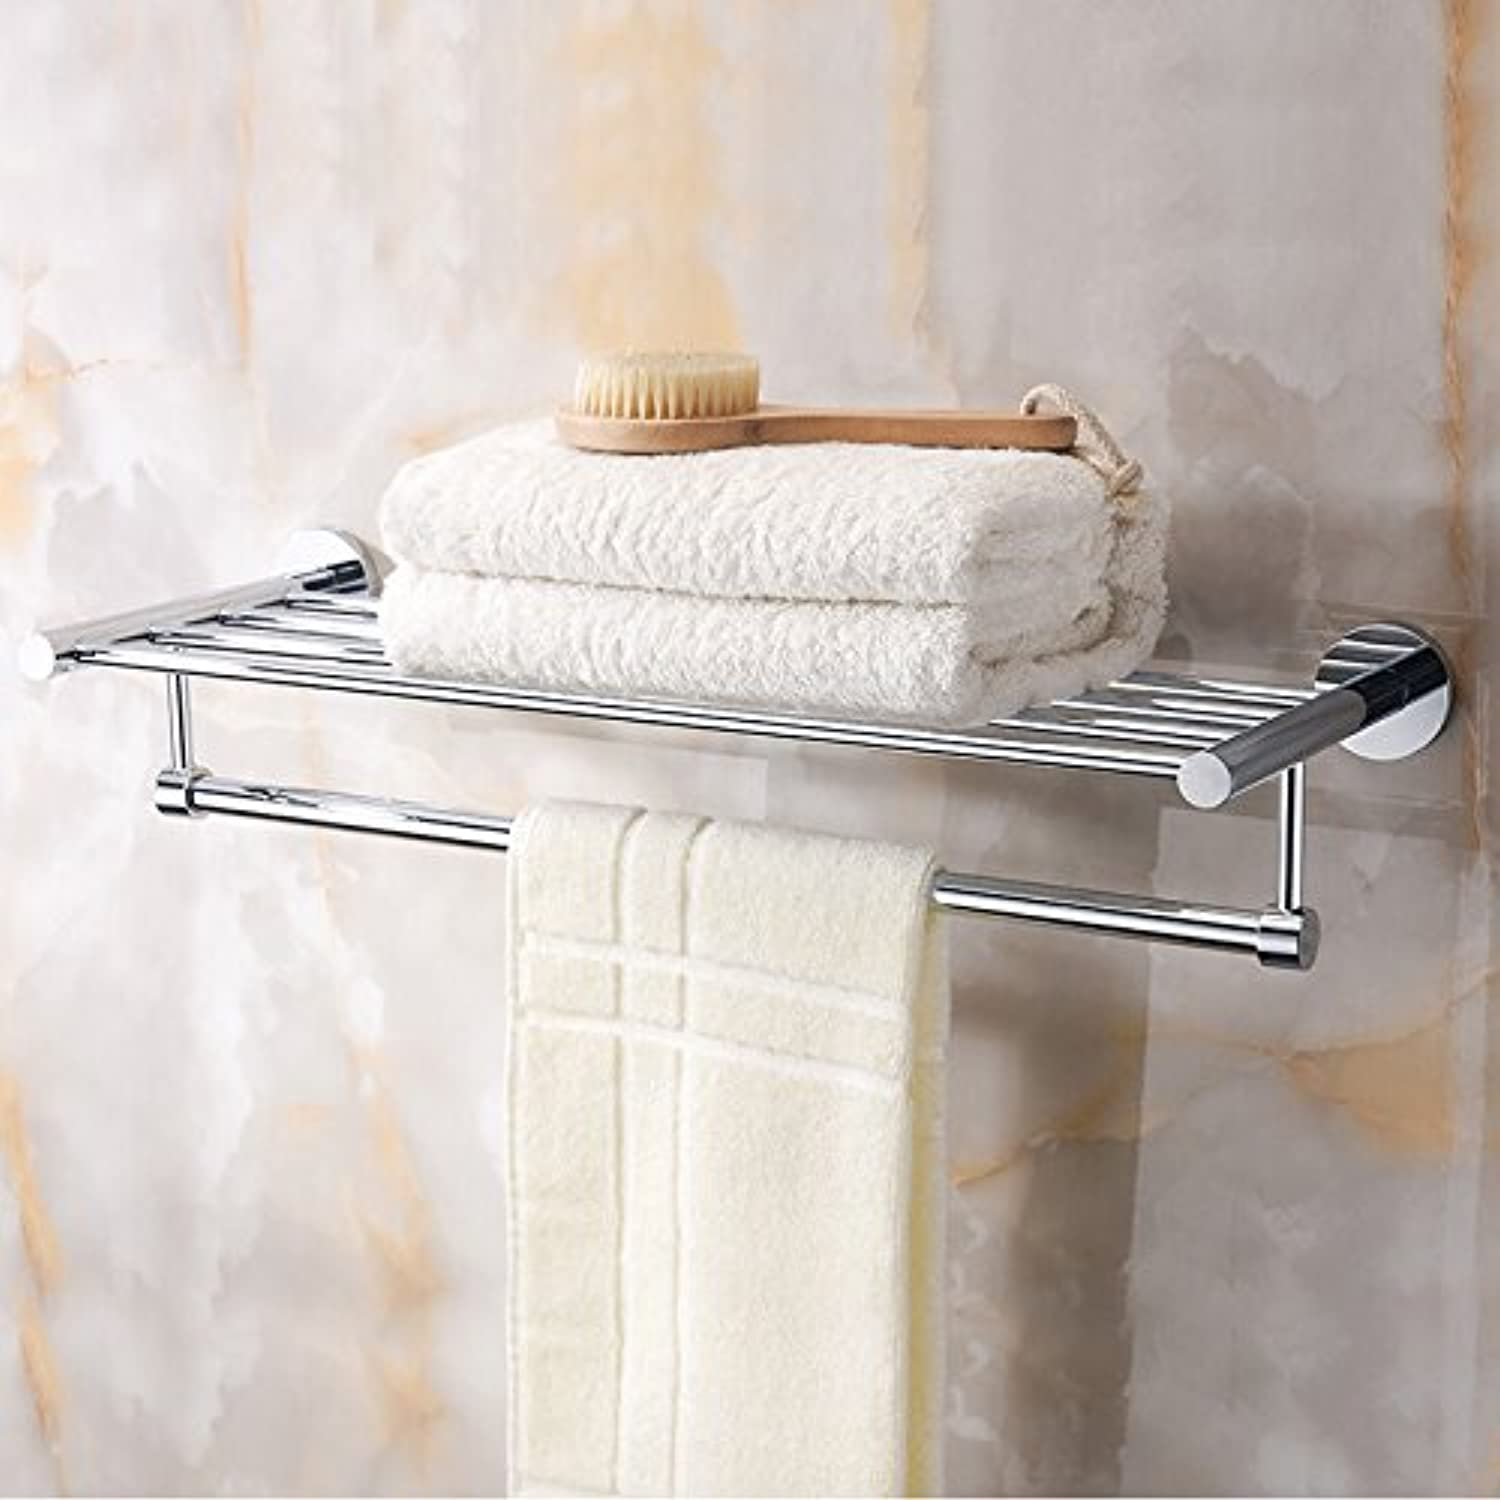 Hardwareh Bathroom Hanger, Copper Towel Rack, Towel Rack and Towel Bar Toilet,3322 (-) Modern Simple and Durable Home Decoration Classic Quality Assurance